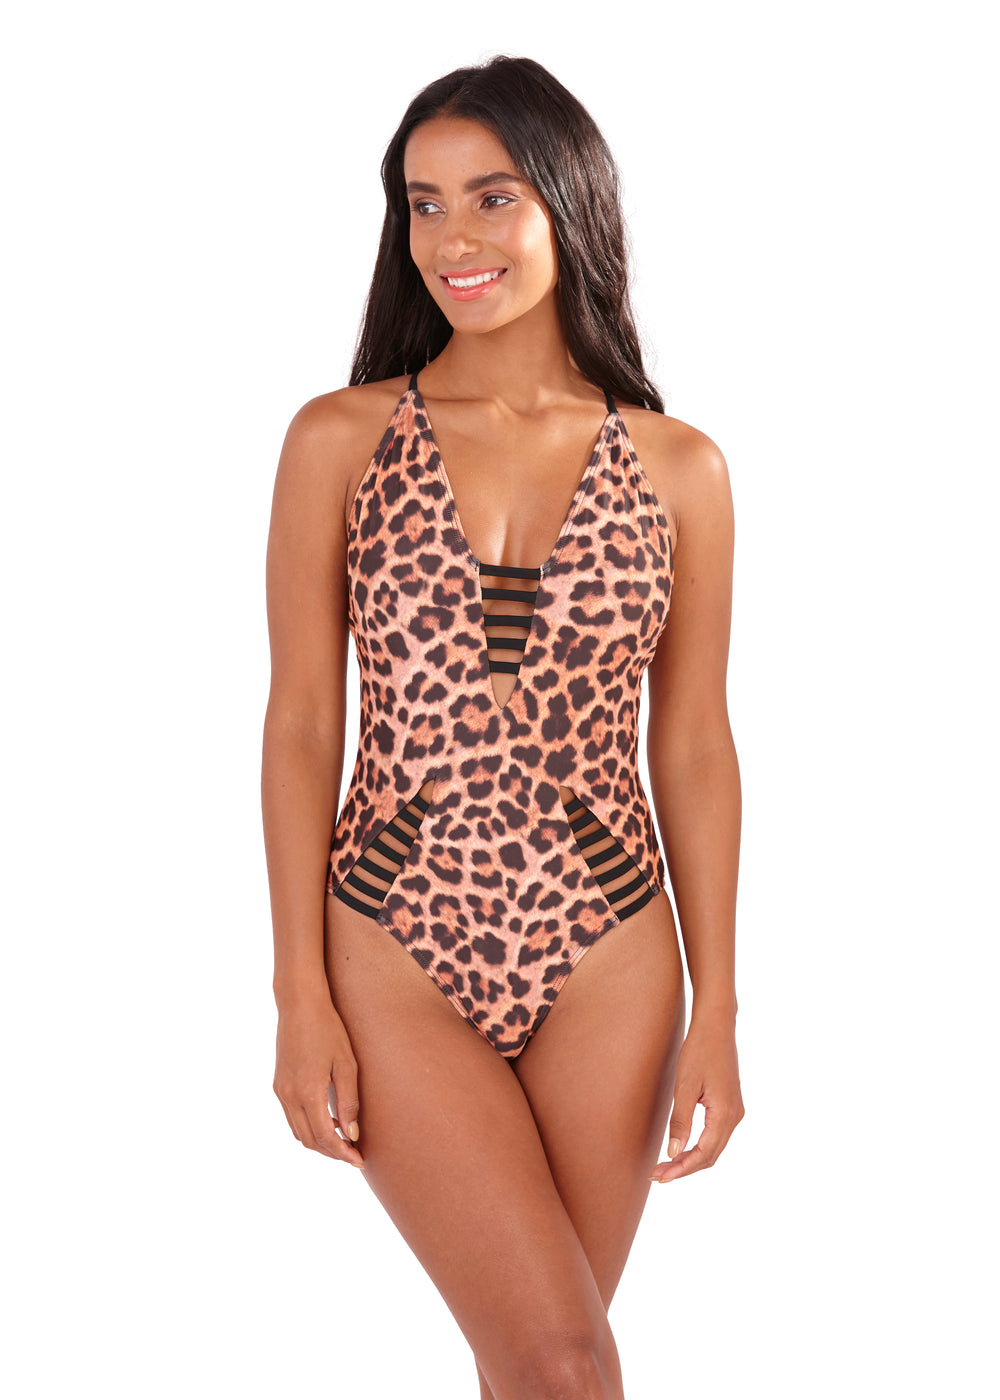 South Beach - Amie Leopard Print Ladder Swimsuit - SB0001-L-F